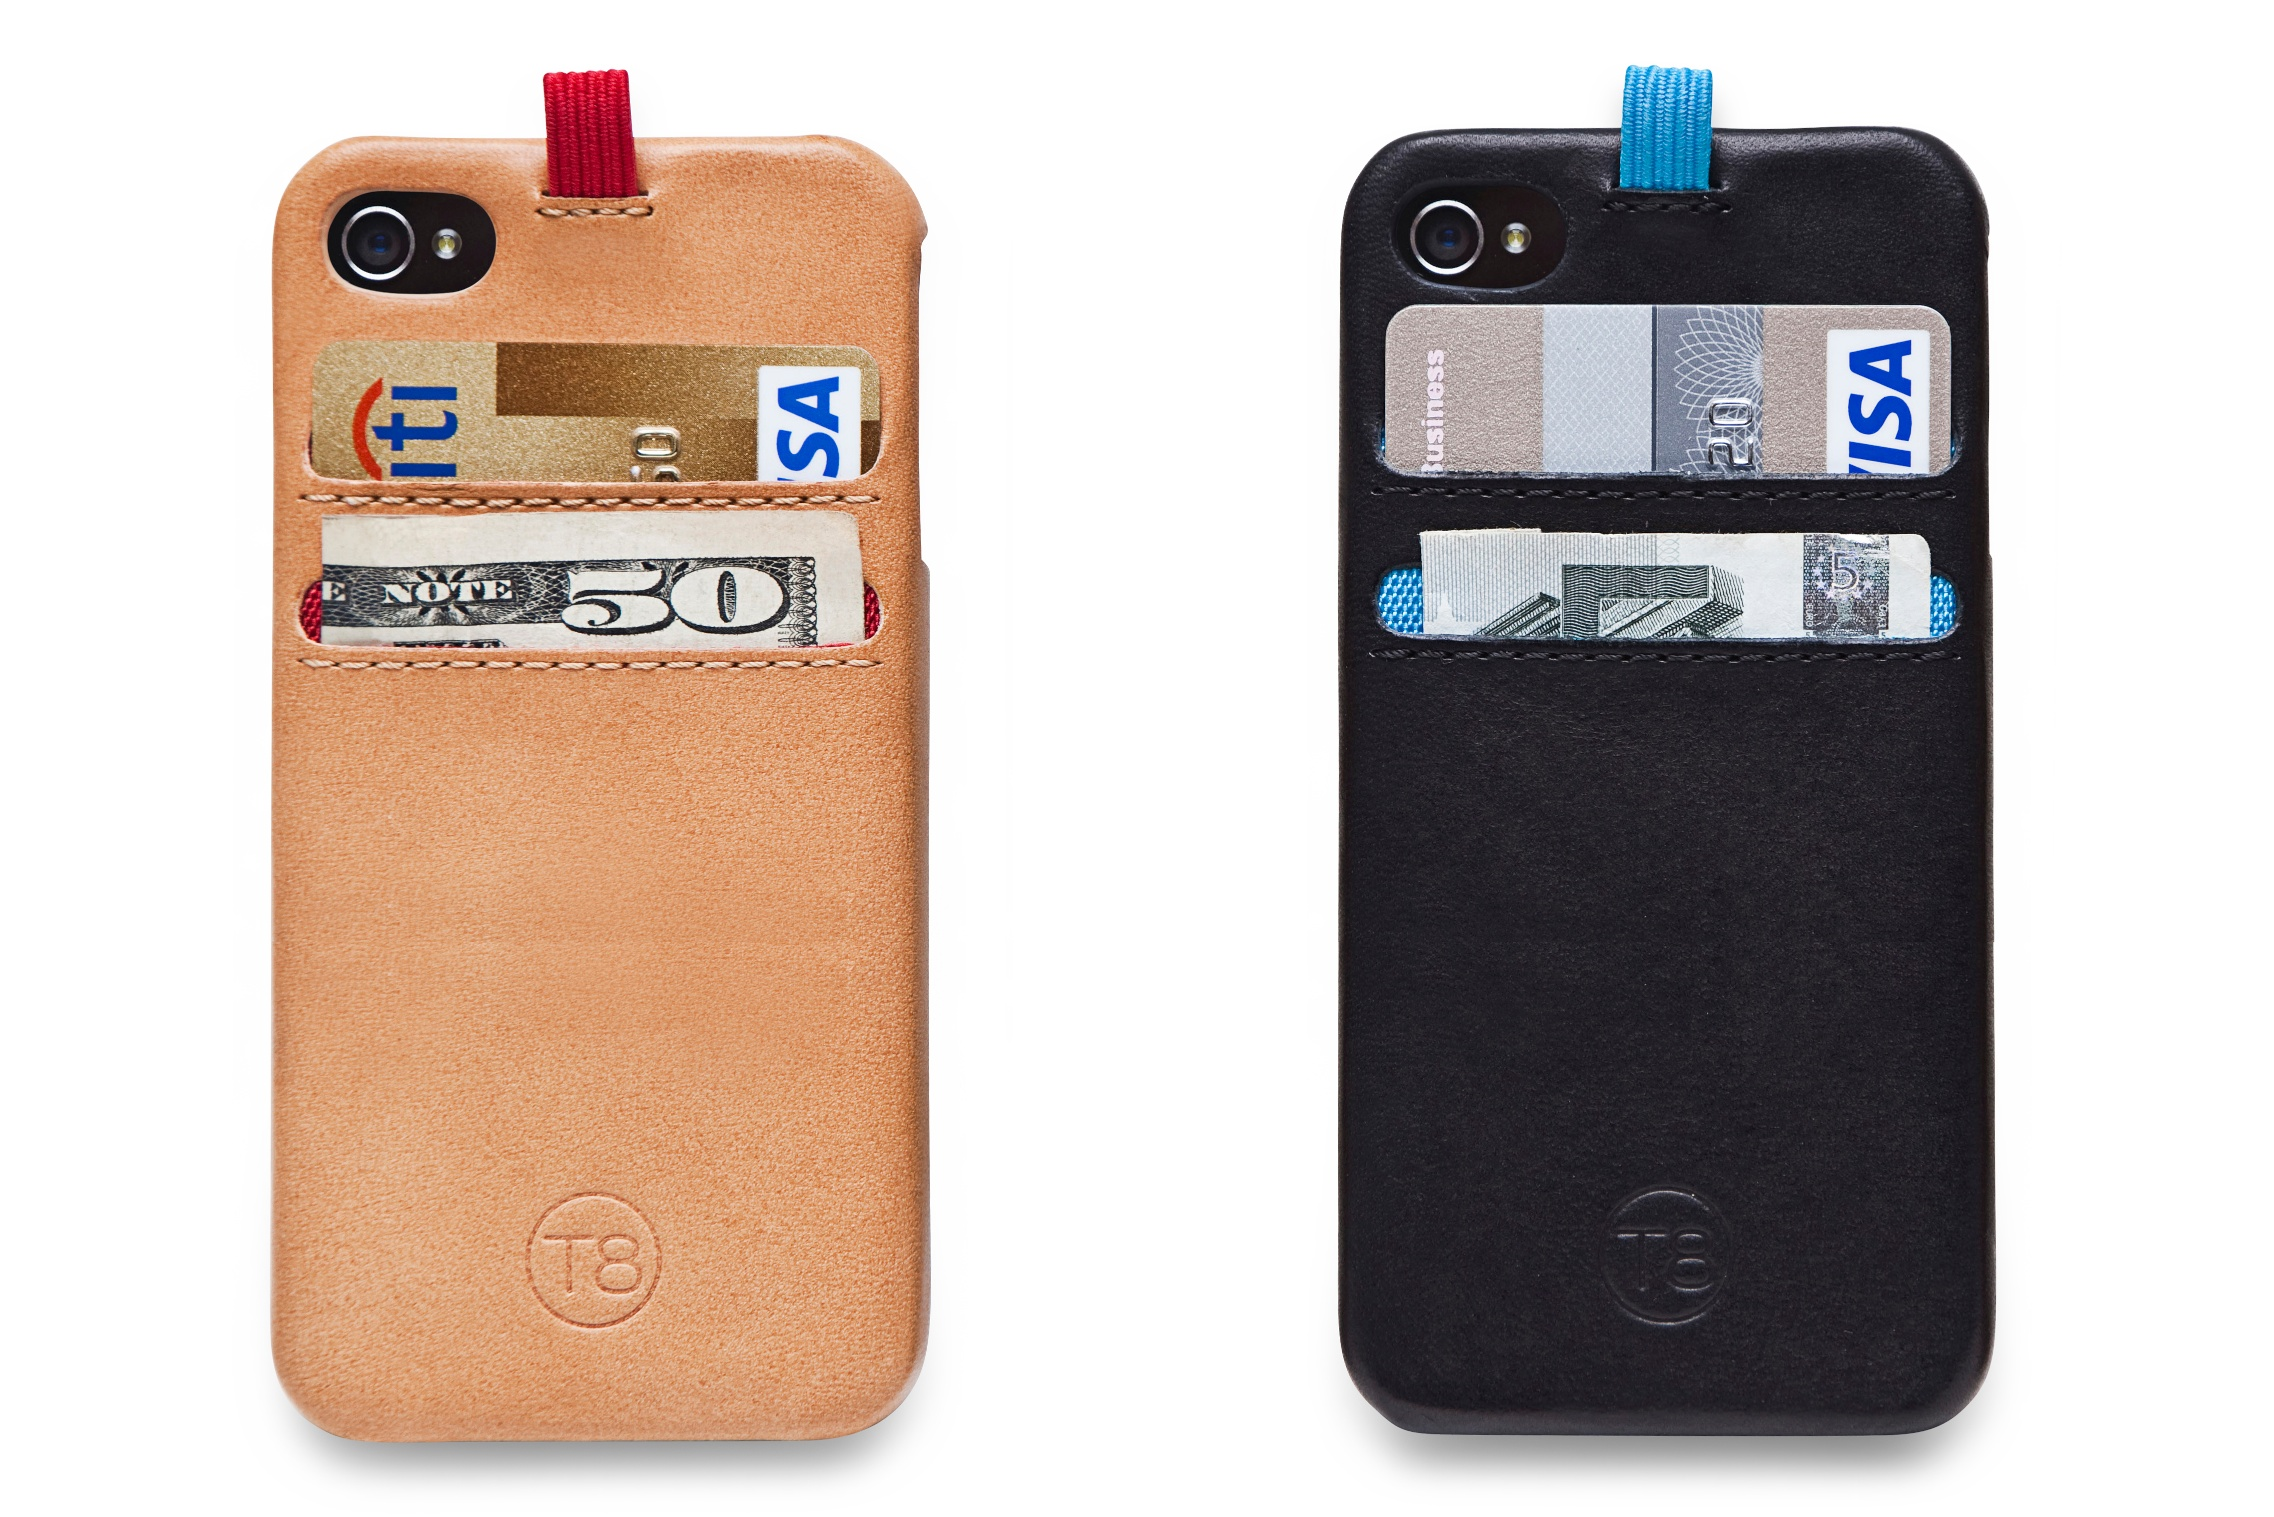 The T8 STORM handcrafted leather iPhone 5 wallet case